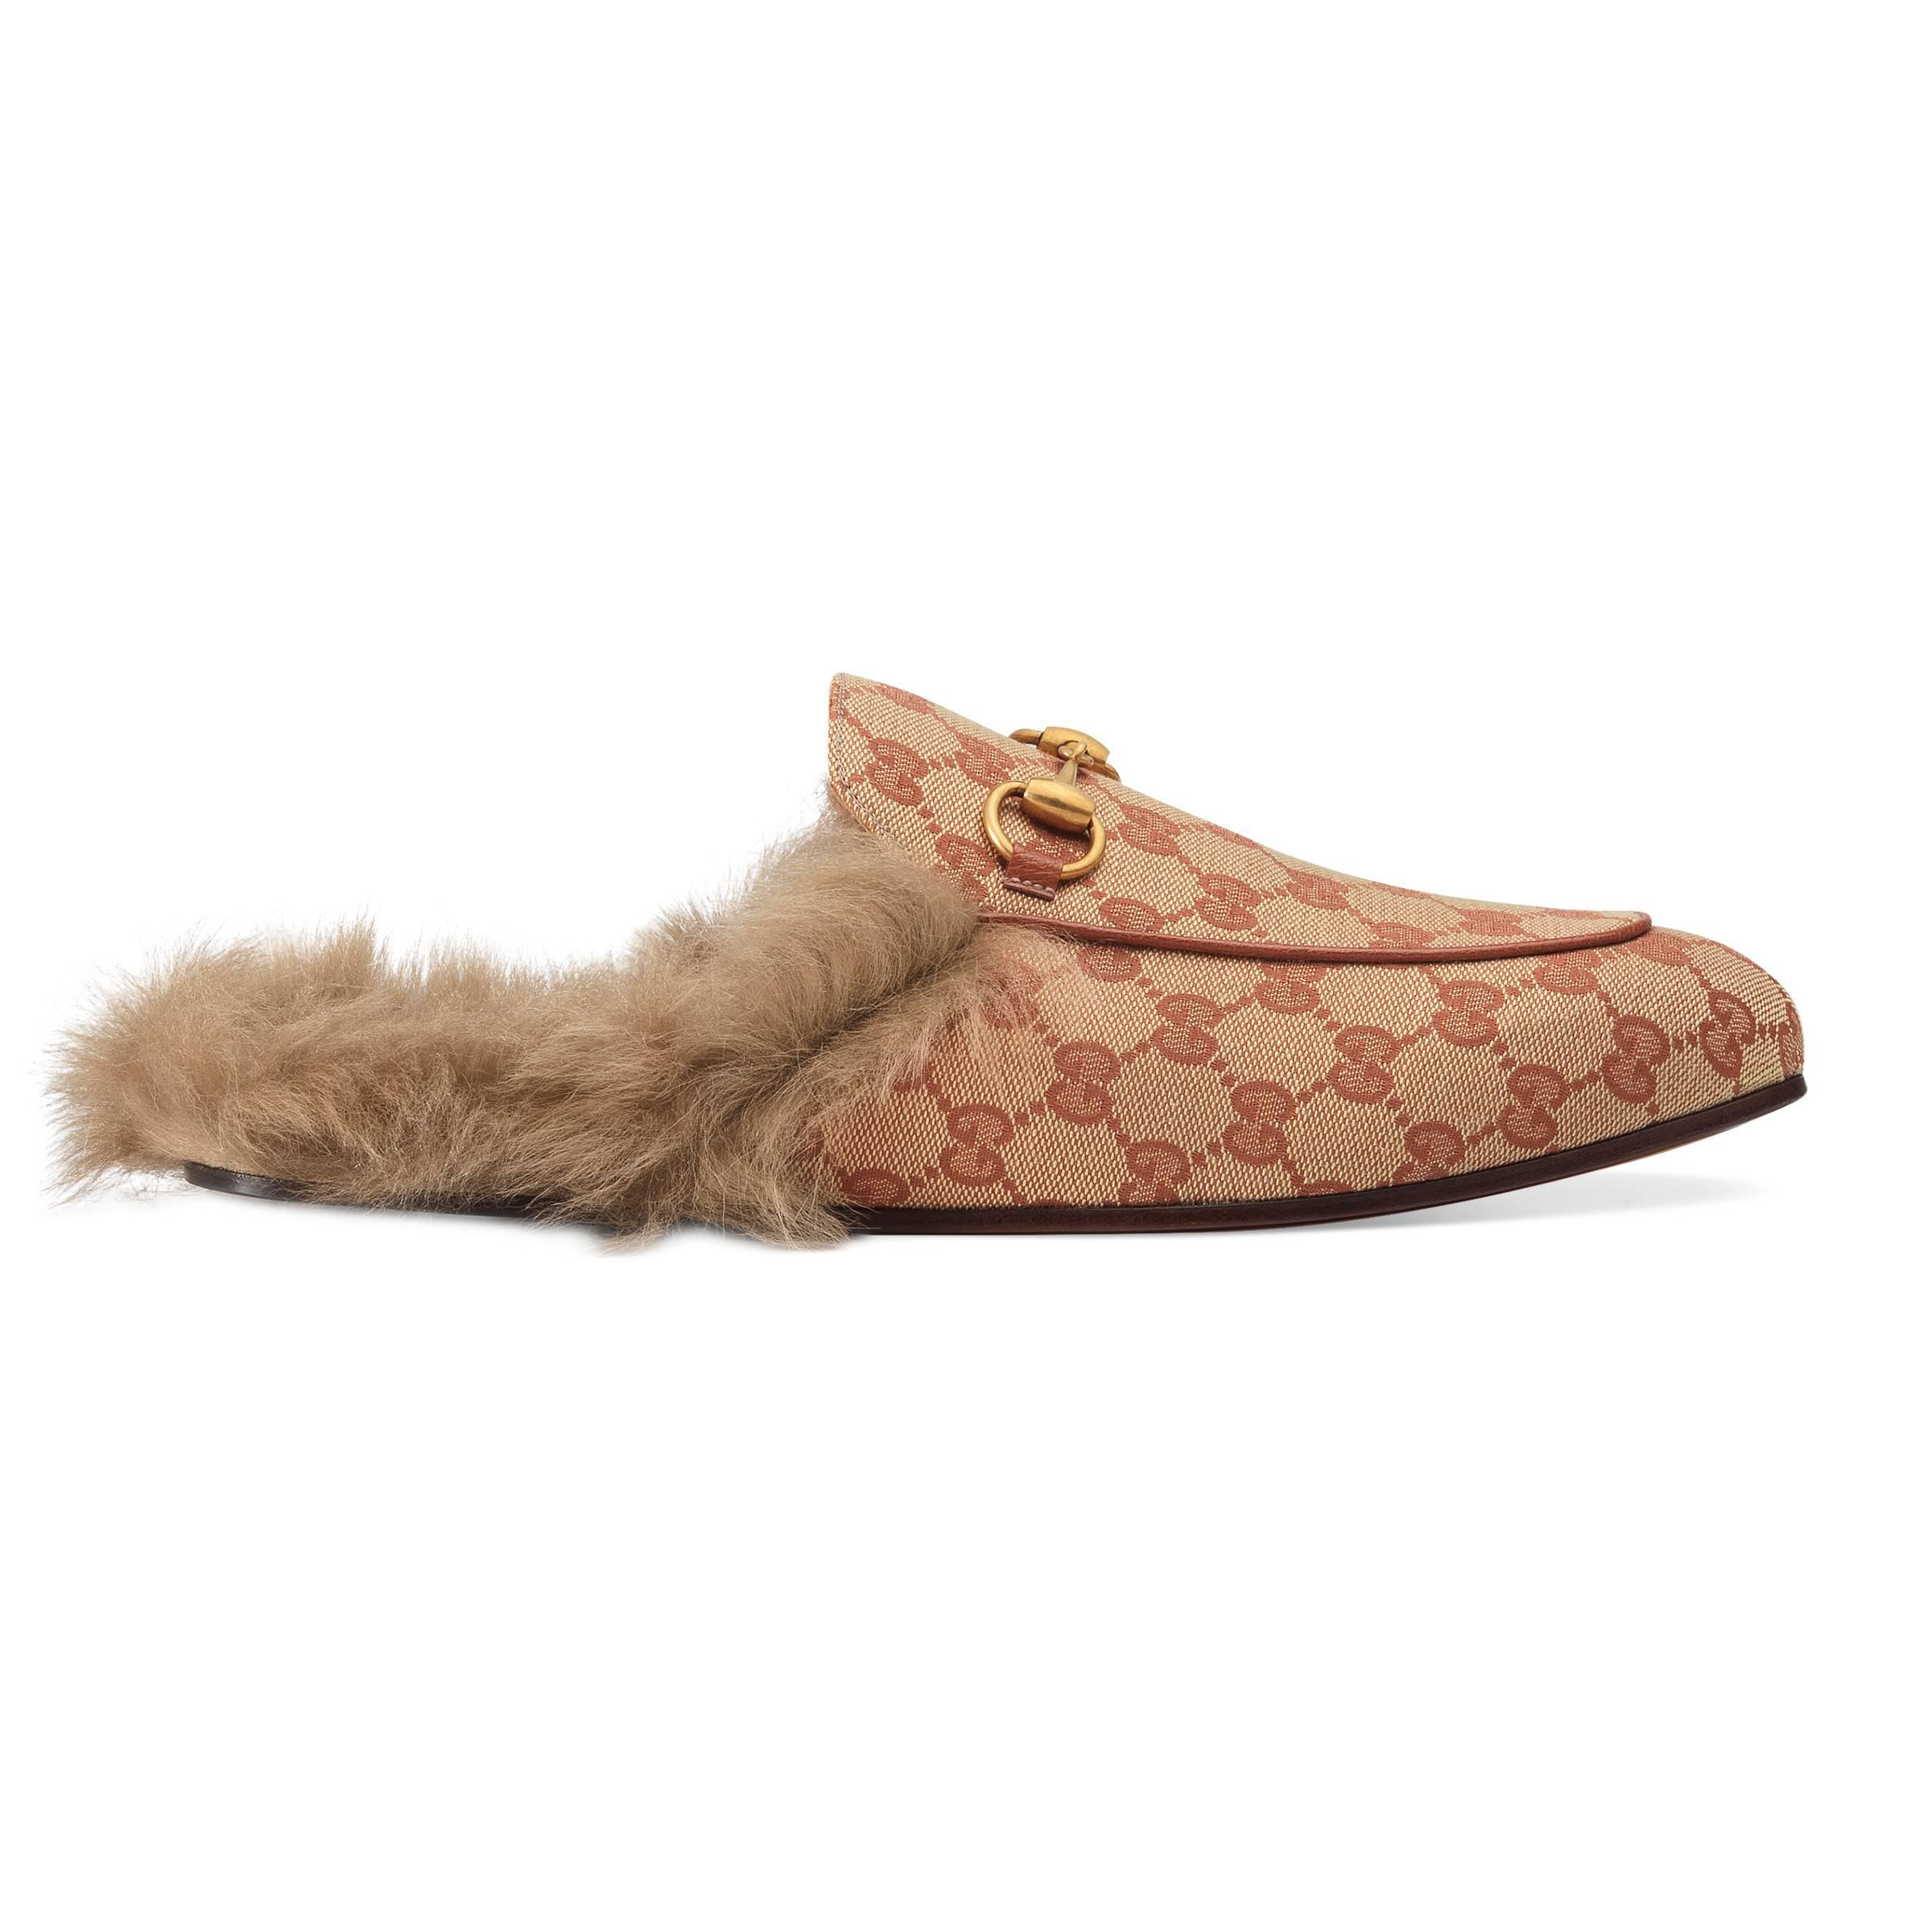 a1a430afb81b Gucci Princetown Canvas Slippers in Natural for Men - Save 9% - Lyst